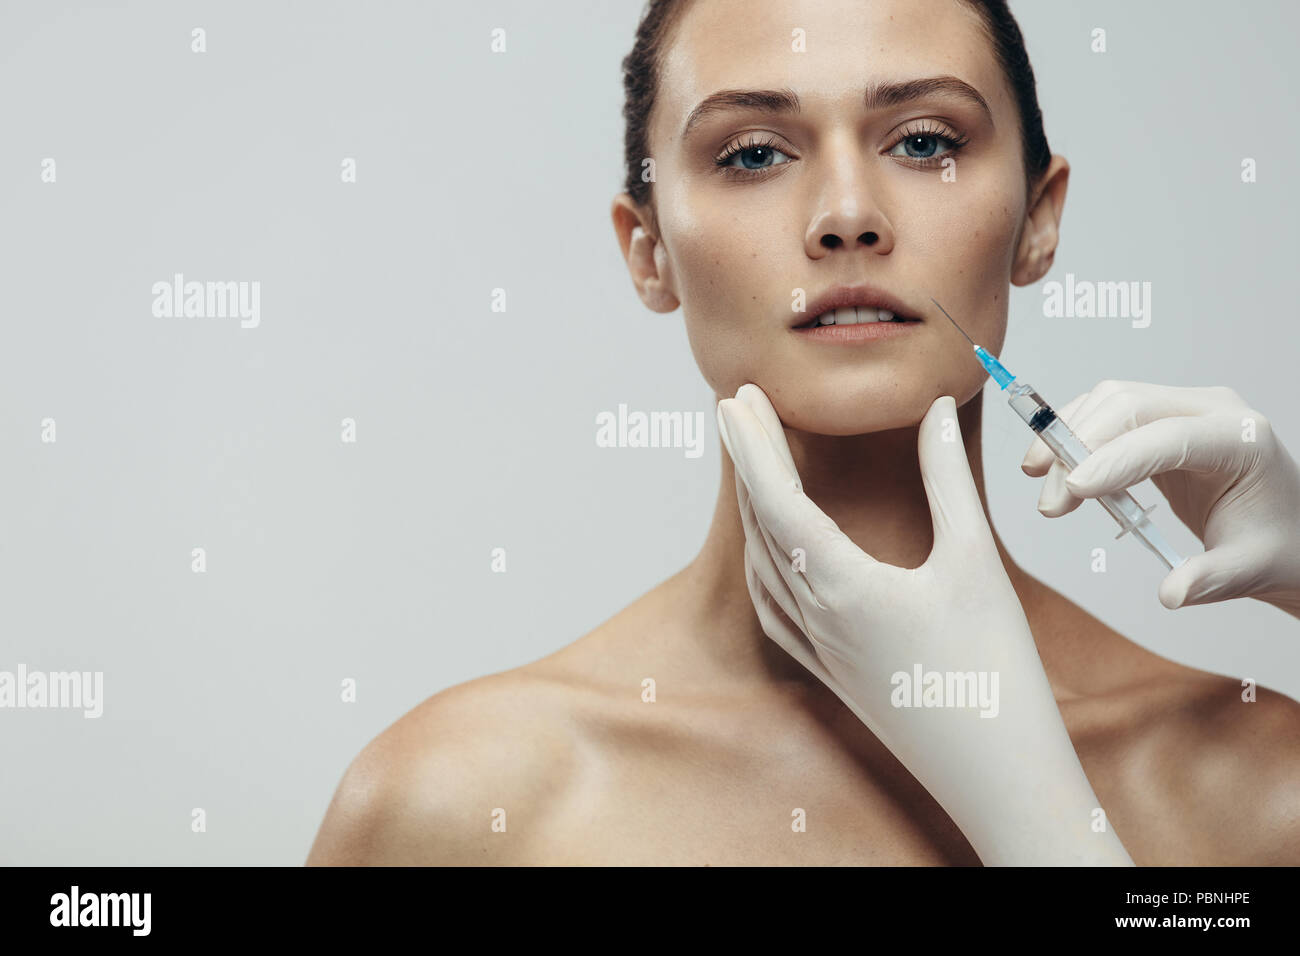 Portrait of young woman getting cosmetic injection. Close up of beautiful woman gets injection in her face against grey background with copy space. - Stock Image